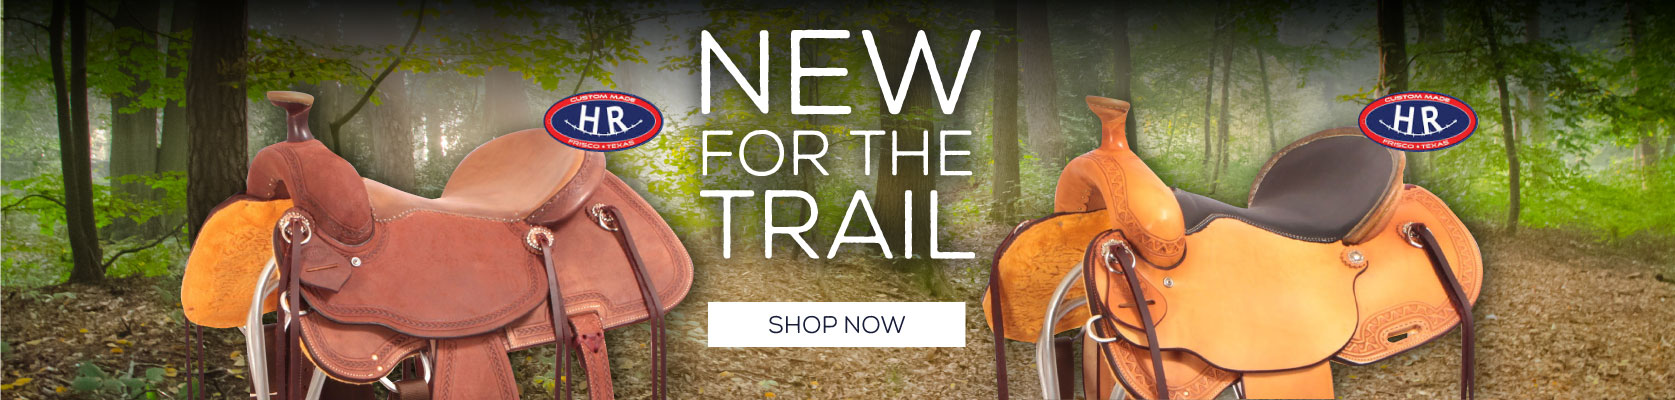 HR Trail Saddles for Spring and Summer